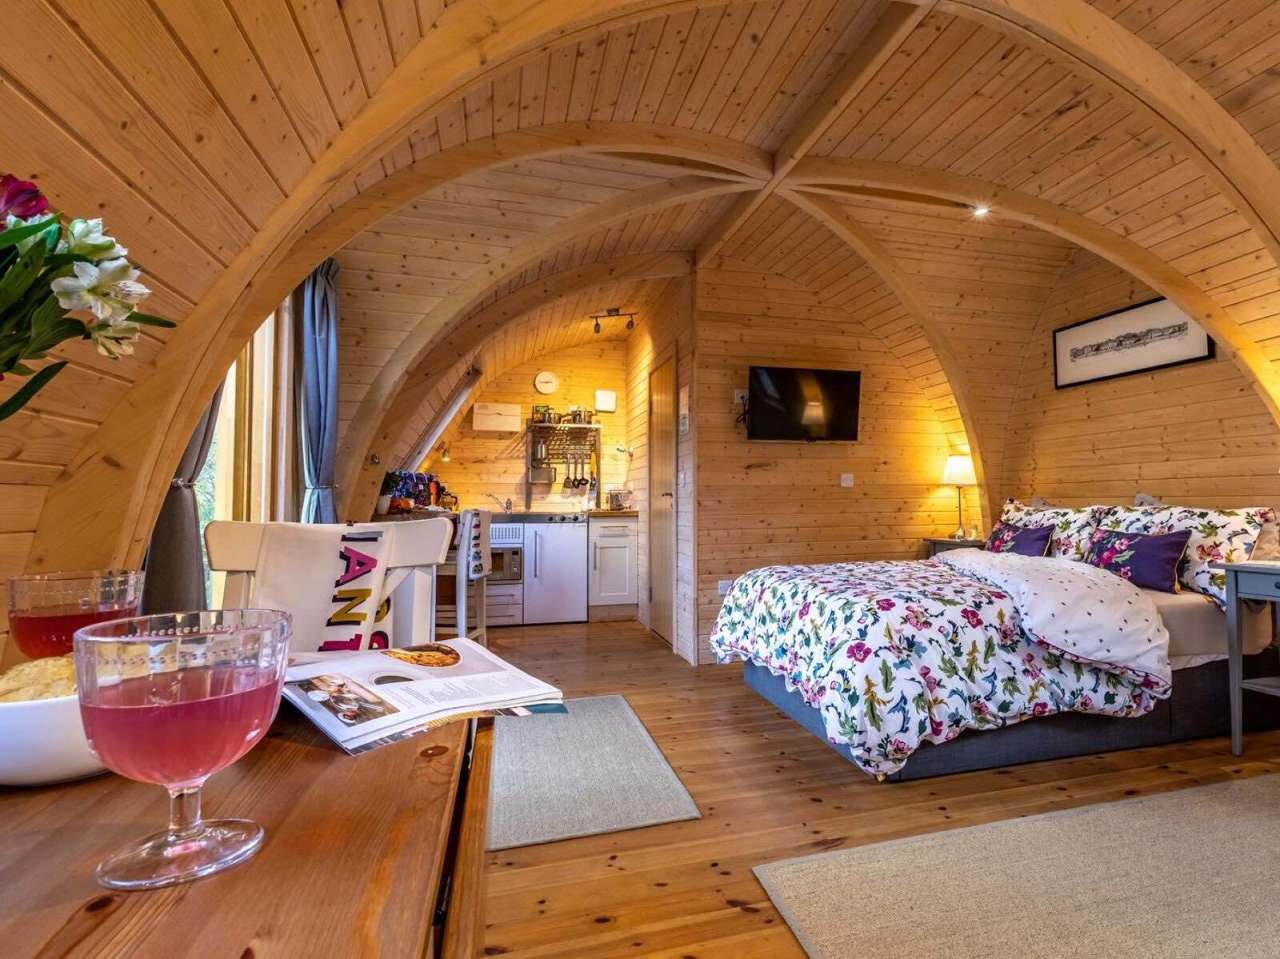 Hobbit holiday hideaways in the Cornishwoods